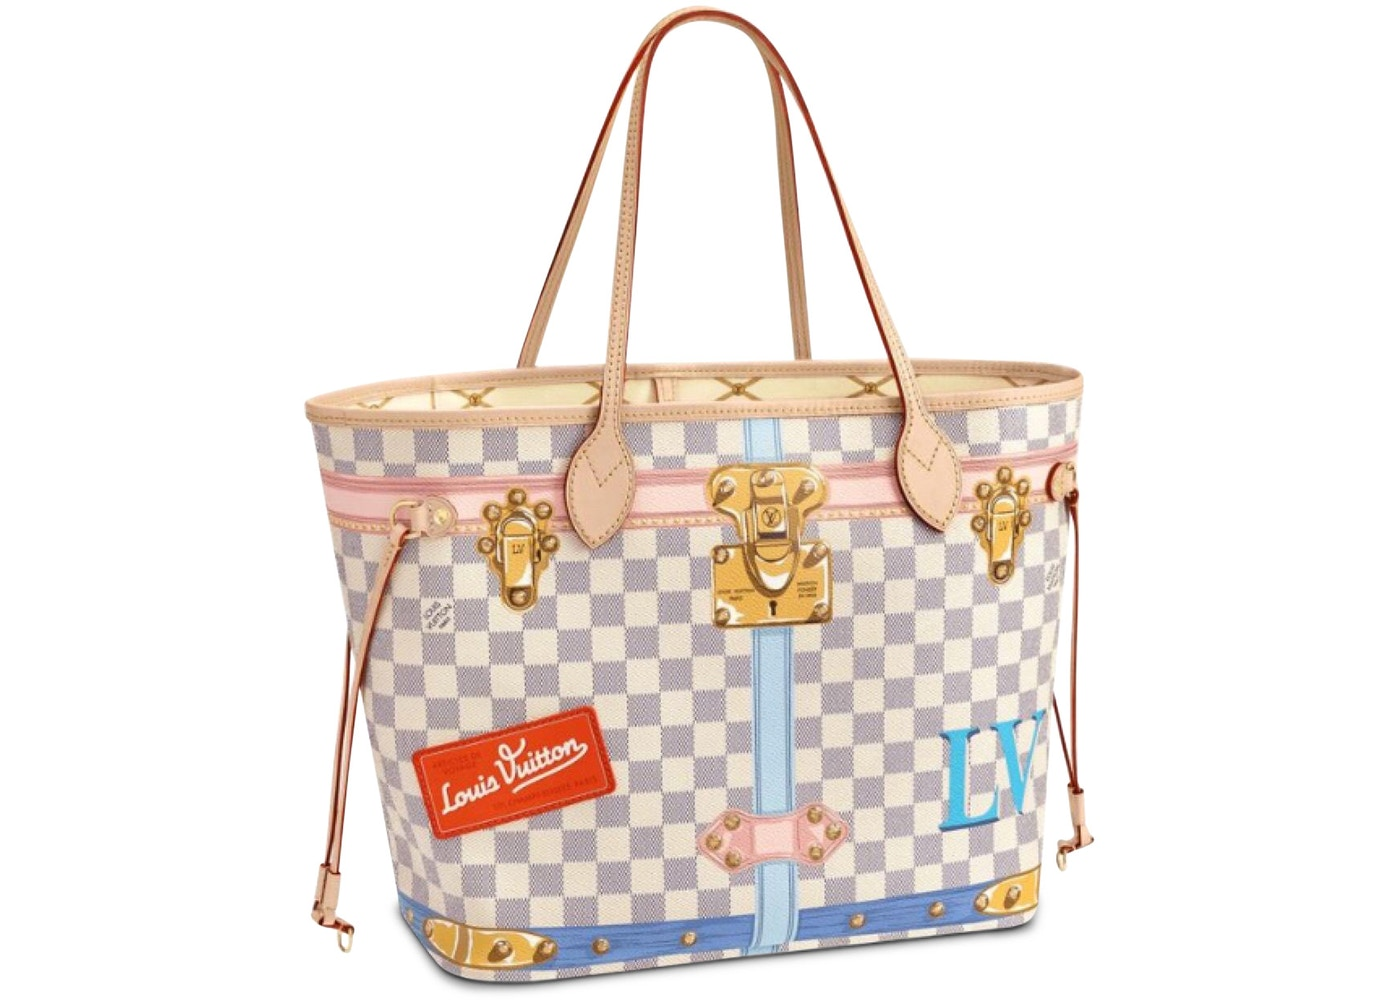 755aee0a889 Louis Vuitton Neverfull Damier Azur Tromp L'oeil Screen (Without Pouch) MM  Beige Lining